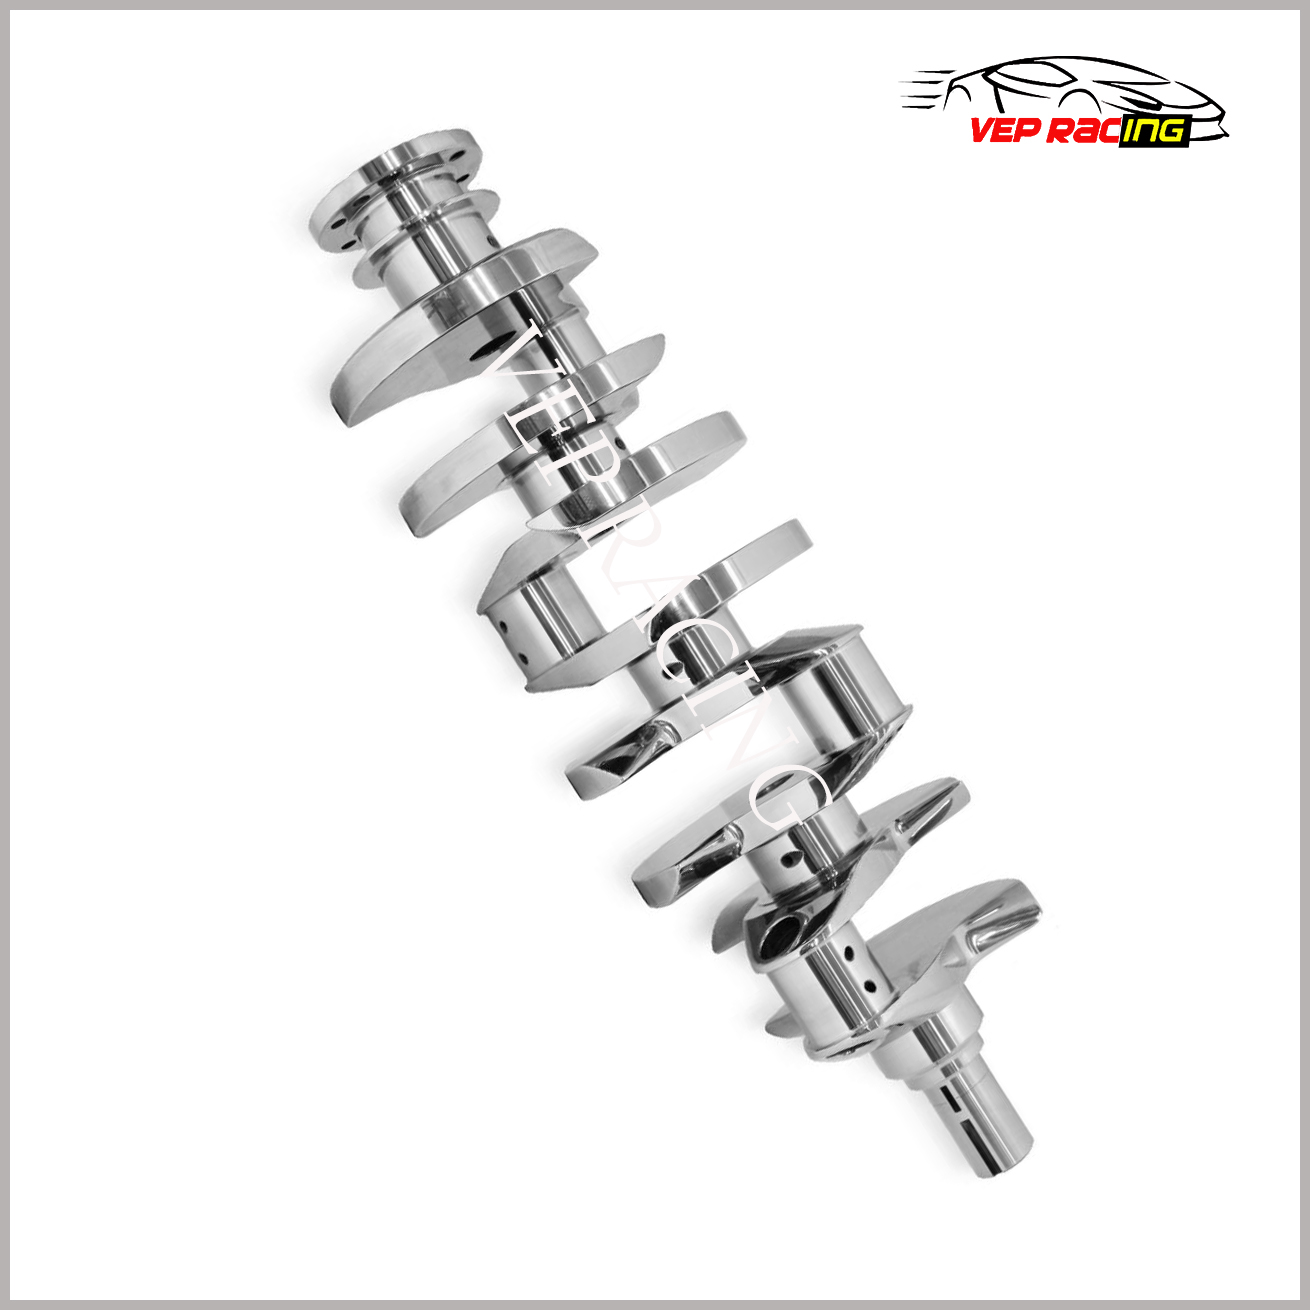 86.40MM VW 2.0L forged billet racing crankshaft